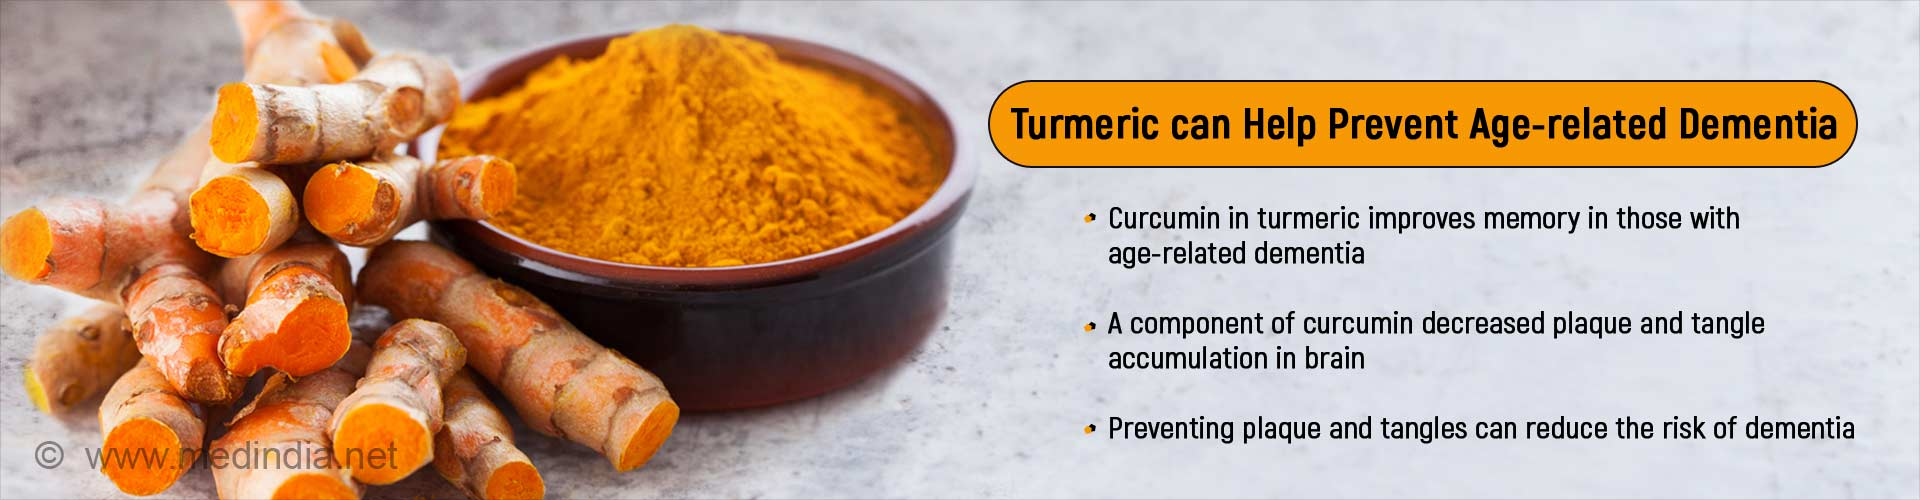 Add A Pinch Of Turmeric to Your Food For Better Memory and Mood